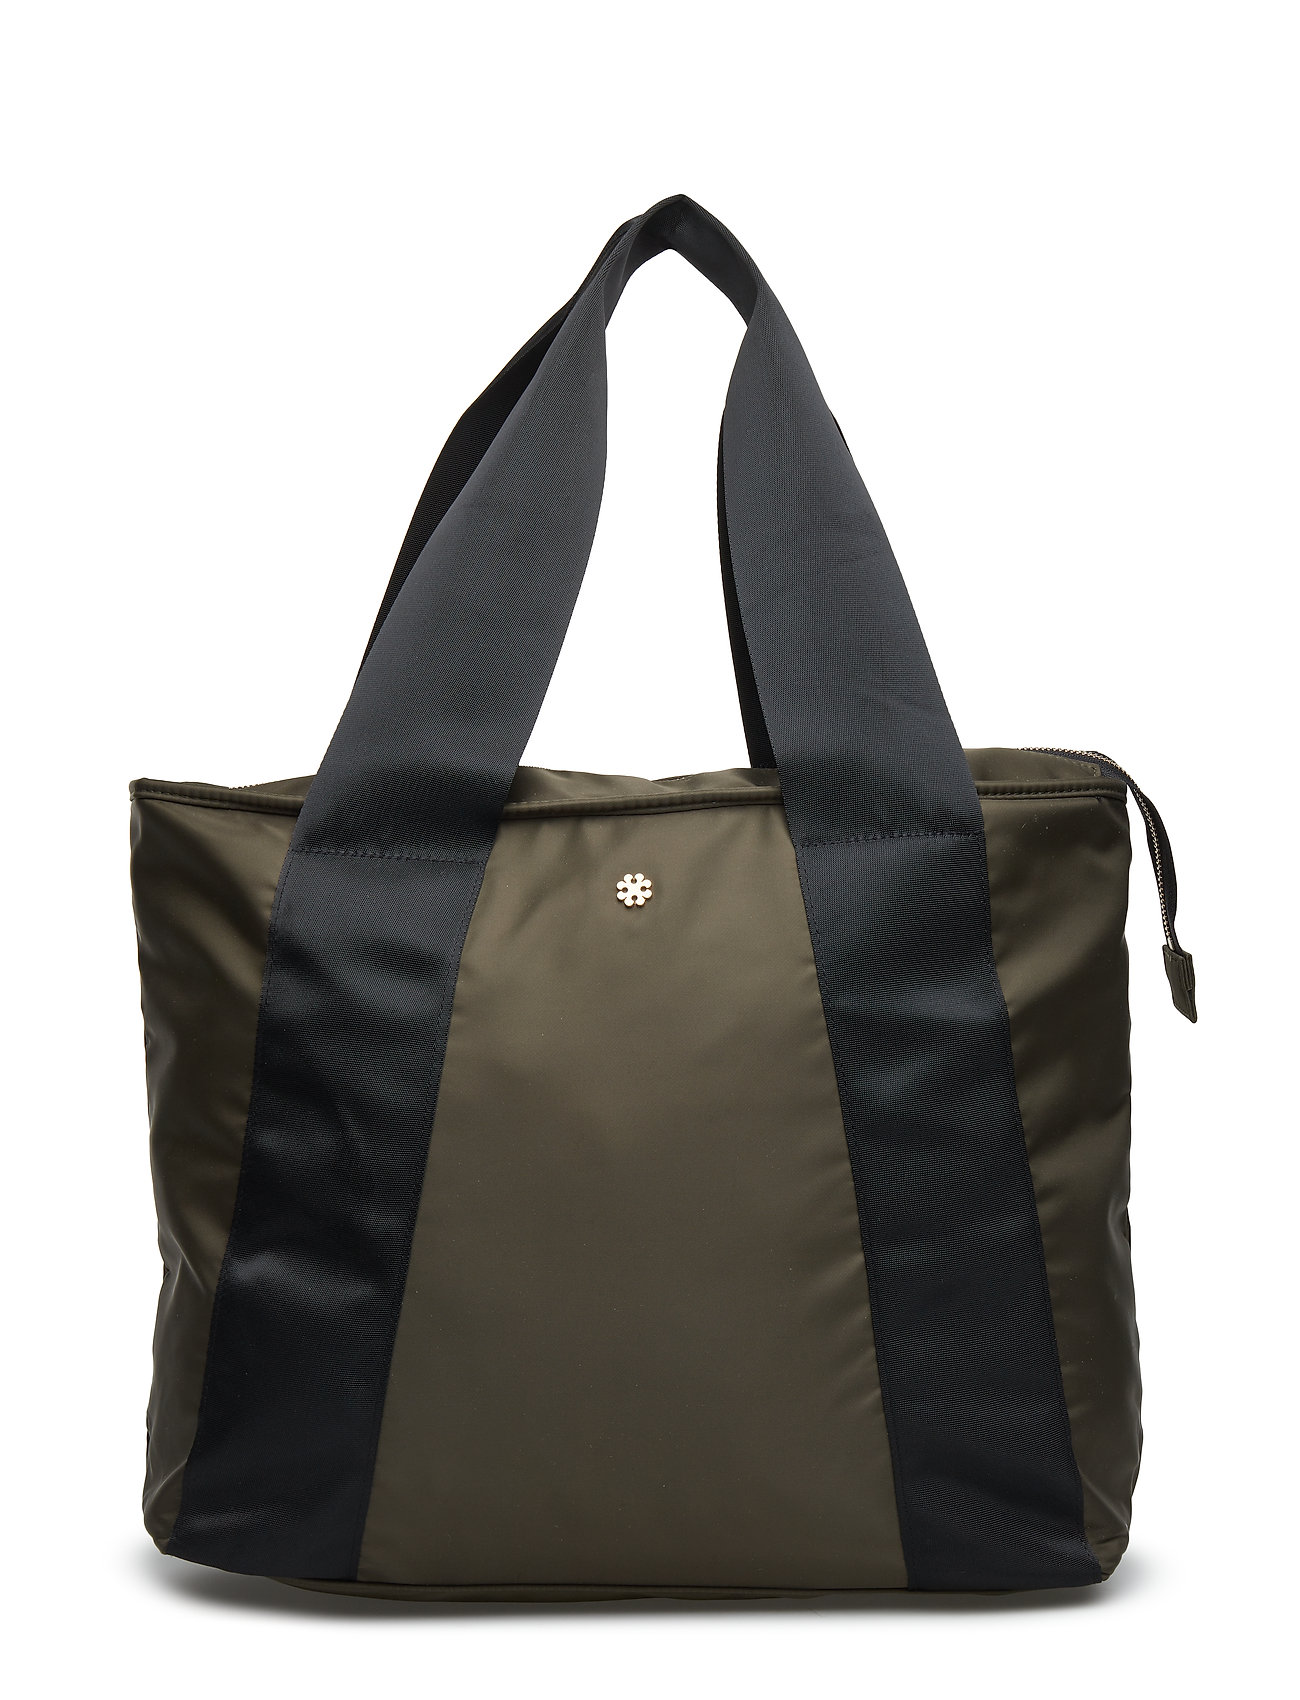 Image of Day Band Bag Bags Weekend & Gym Bags Grøn DAY ET (3095668683)